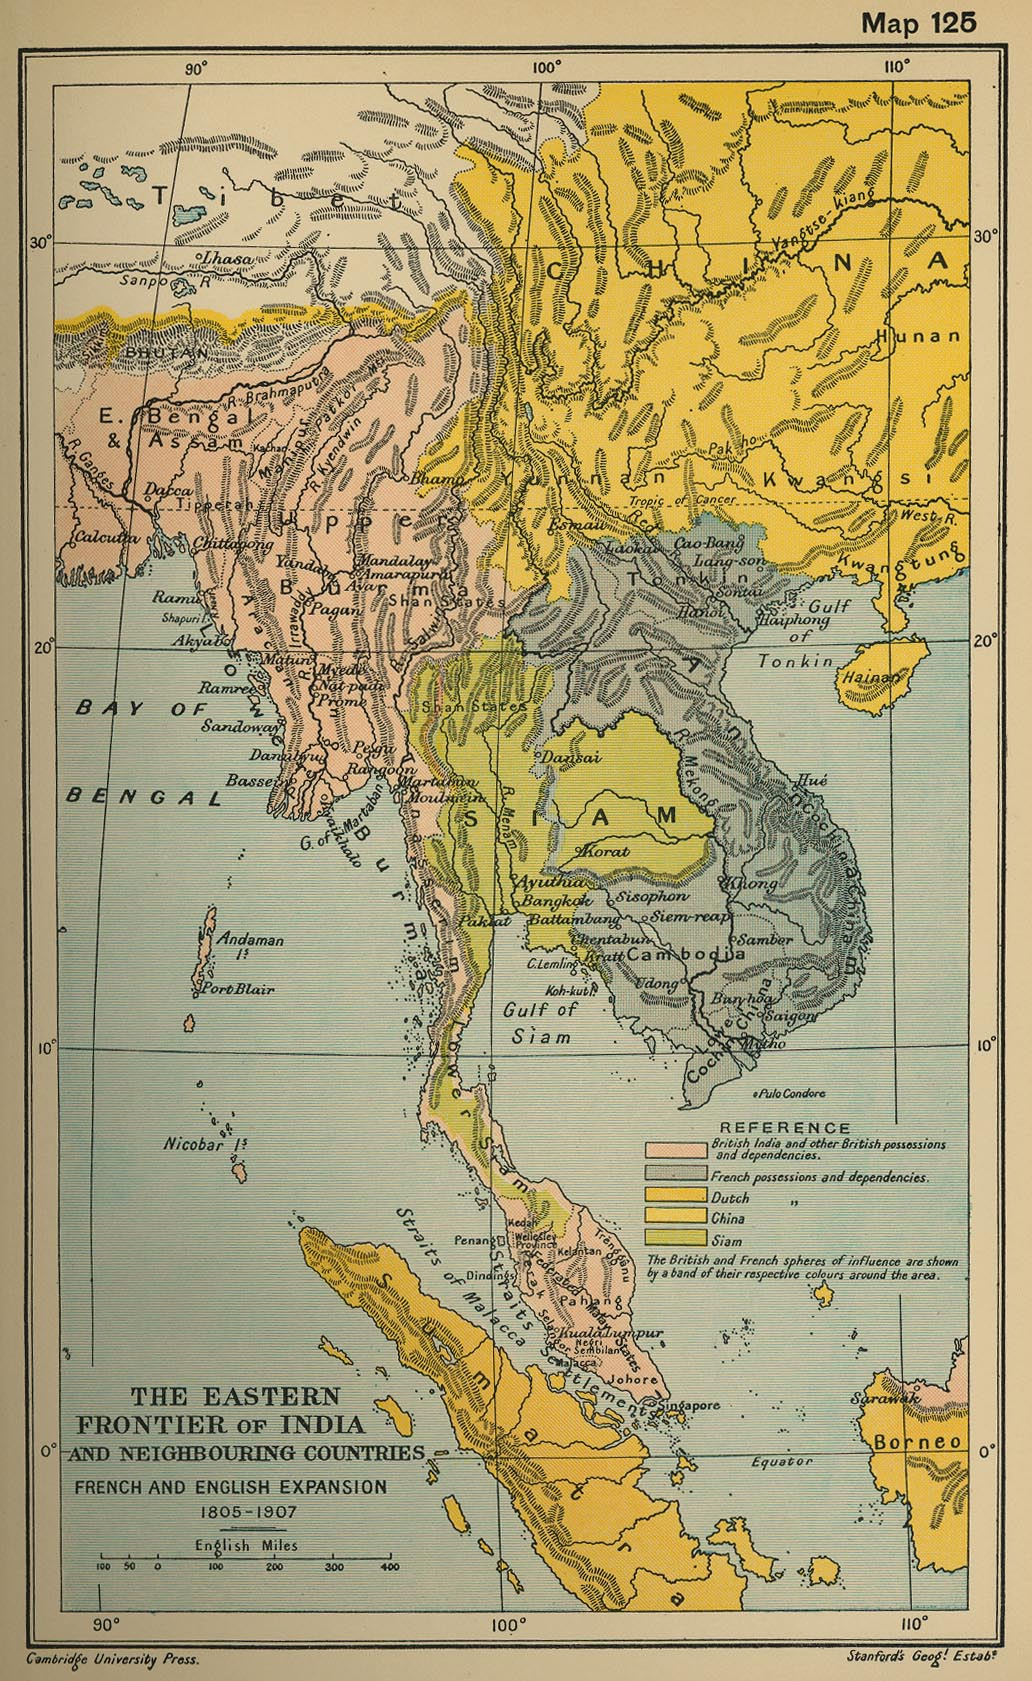 Map of Southeast Aisa: Eastern Frontier of India and Neighboring Countries: The French and English Expansion 1805-1907